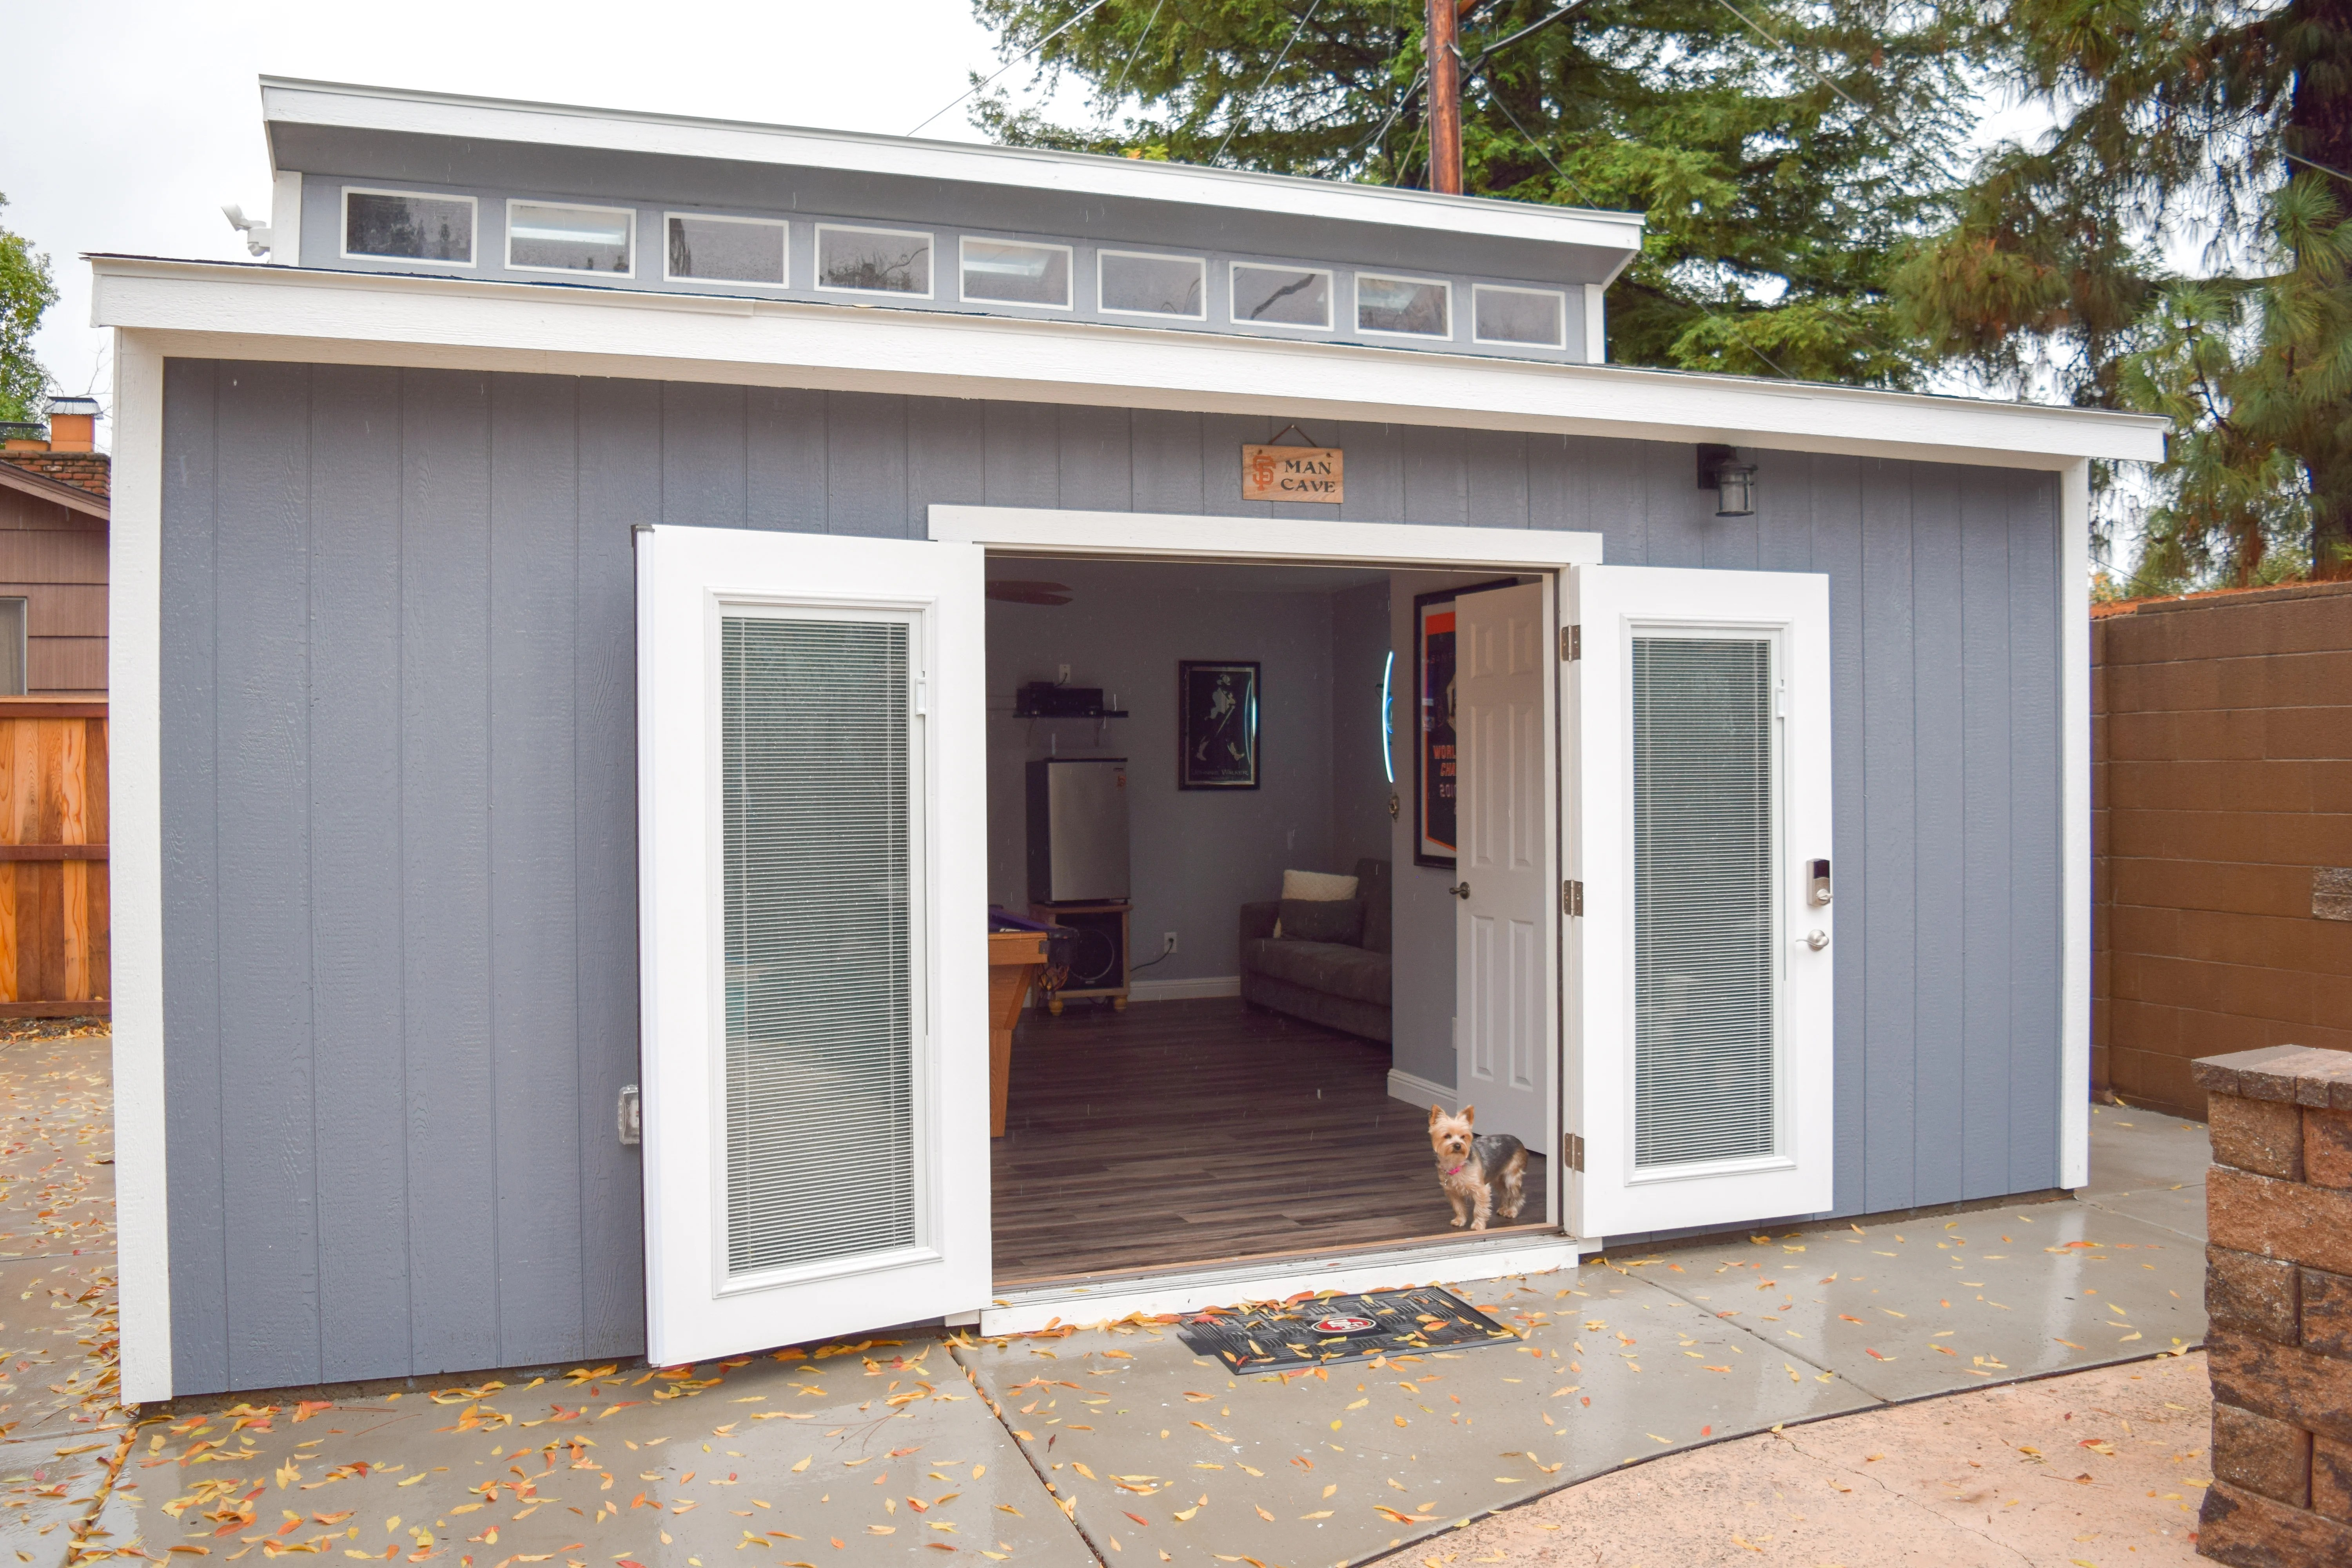 Manuel's Man Cave - Tuff Shed on Man Cave Patio Ideas  id=72150